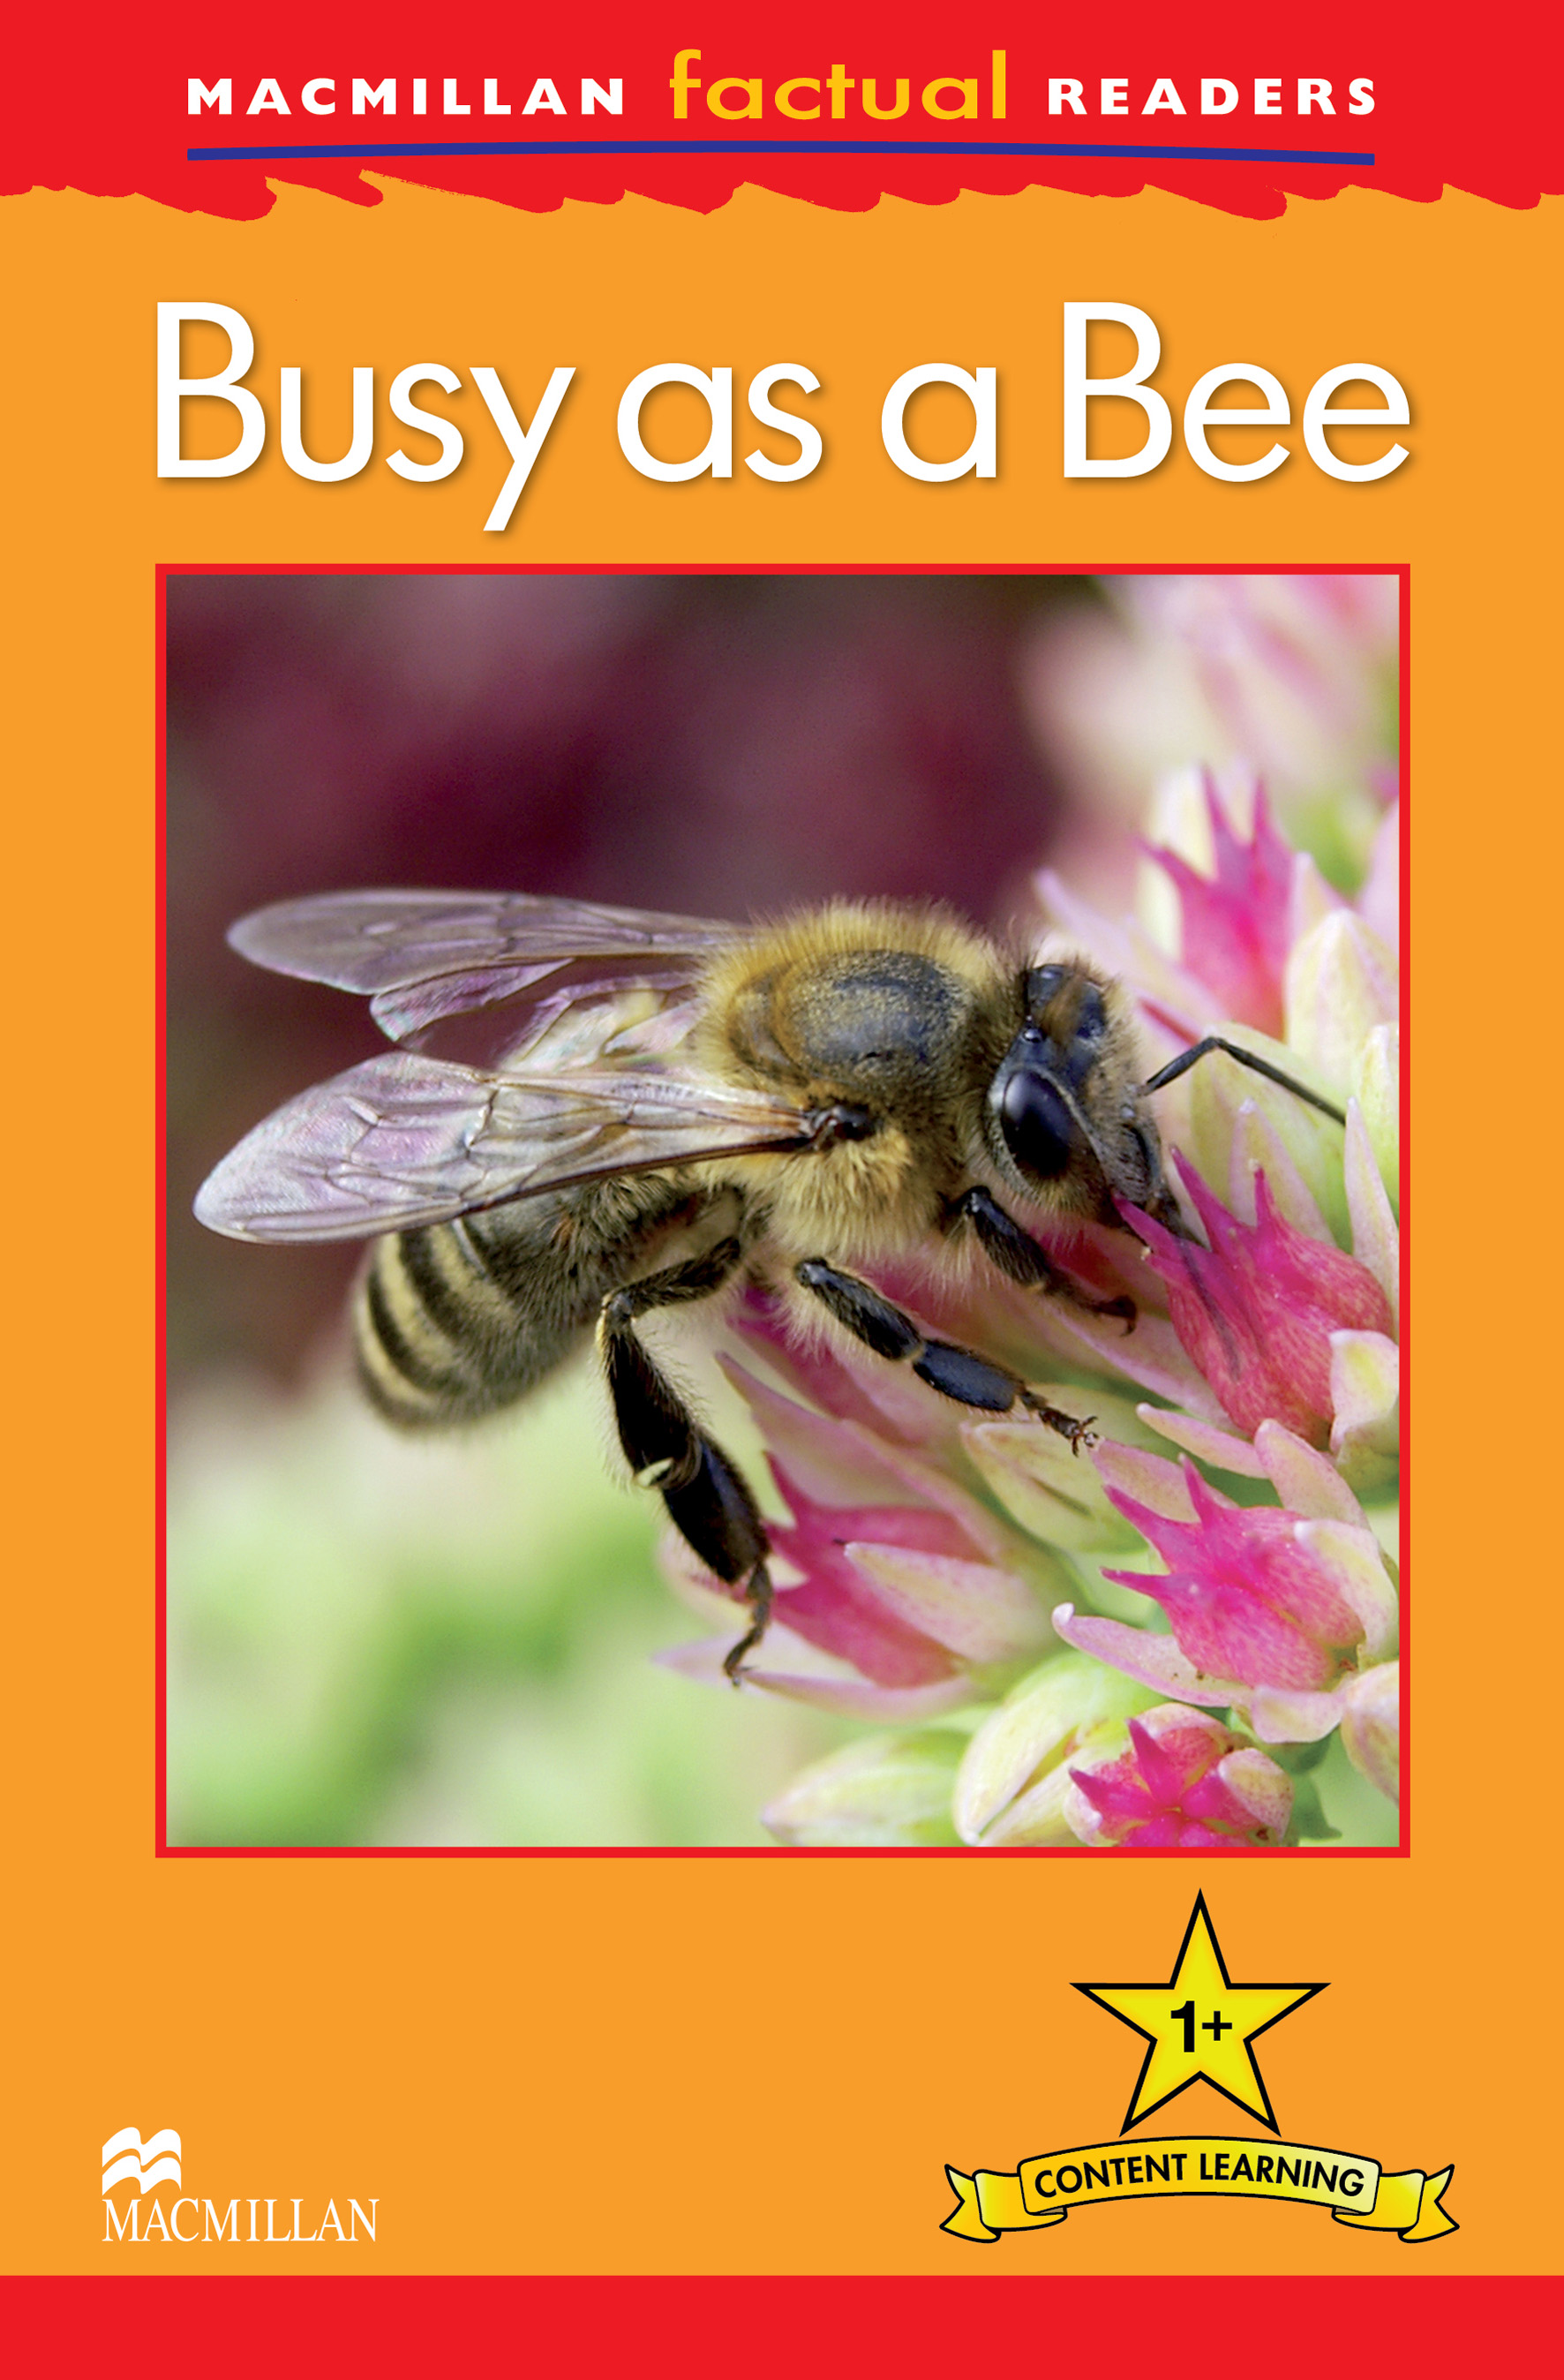 Macmillan Factual Readers: Busy as a Bee